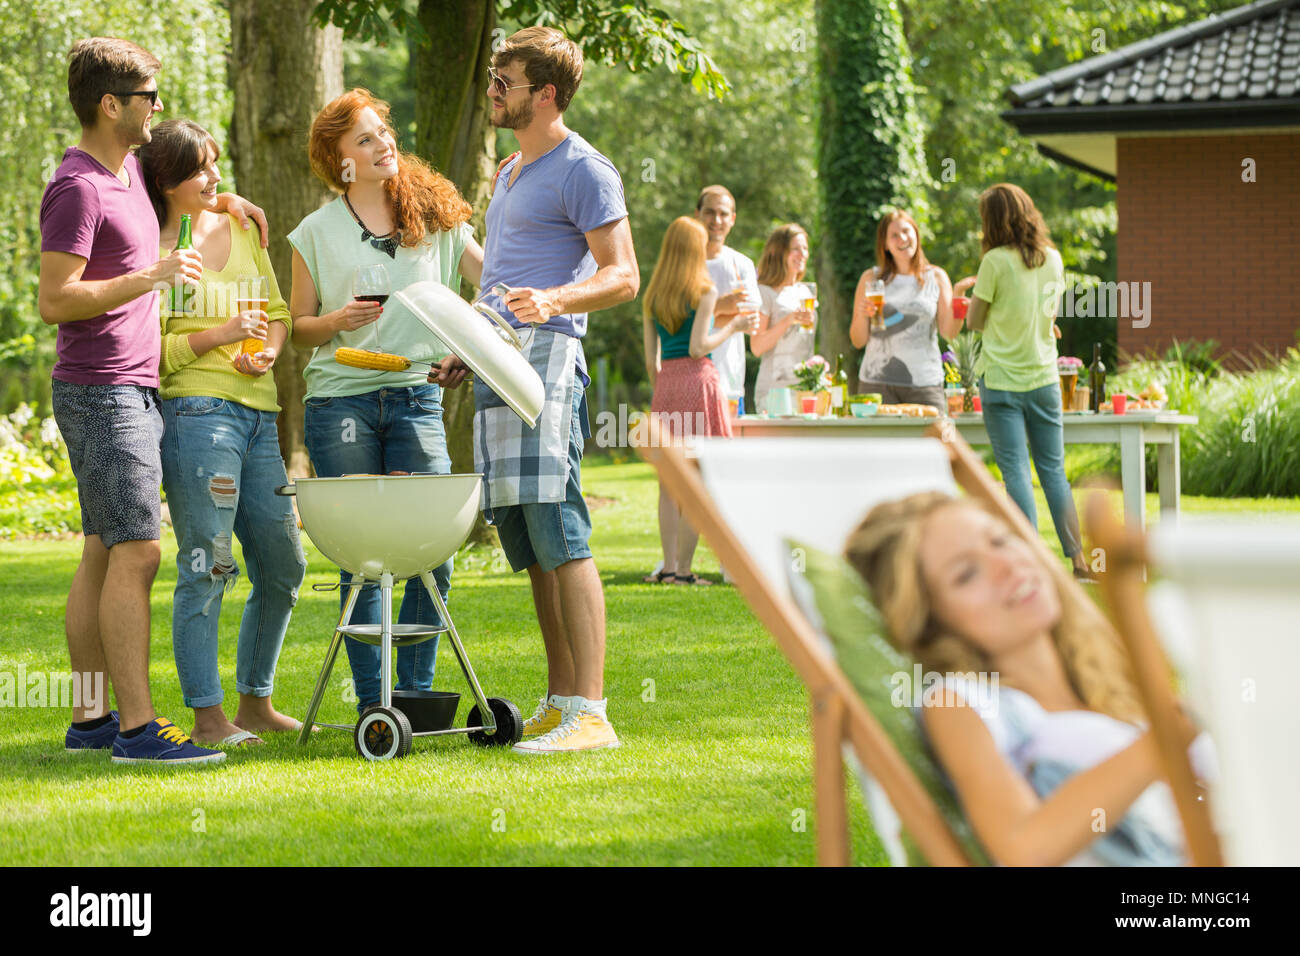 Young man grilling food while talking with friends Stock Photo